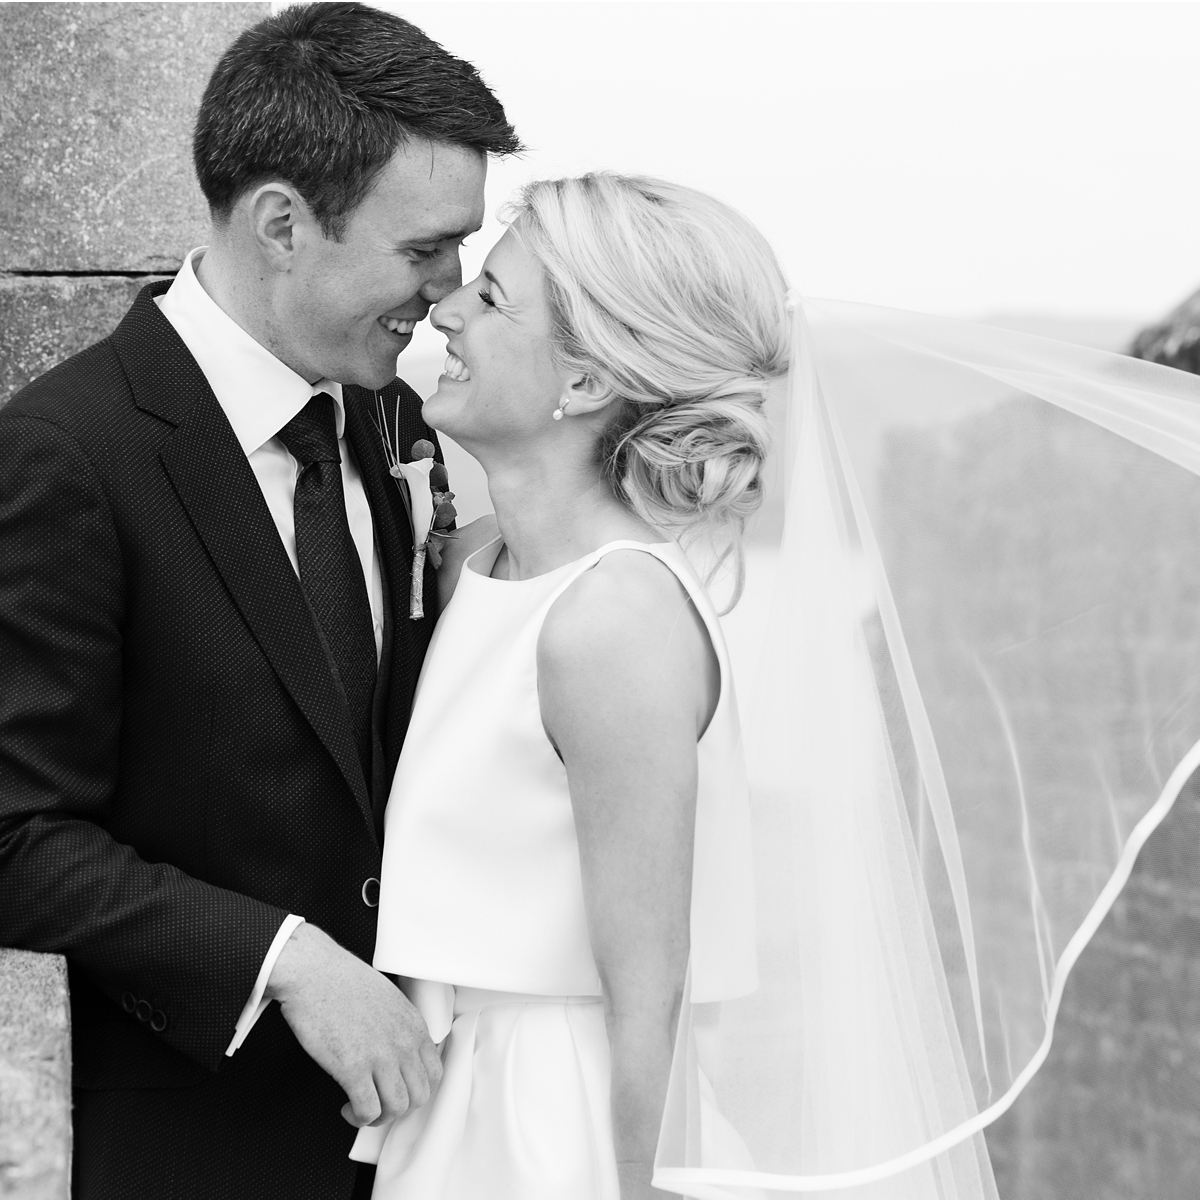 black and white photo of bride and groom nose to nose with brides veil blowing in the wind